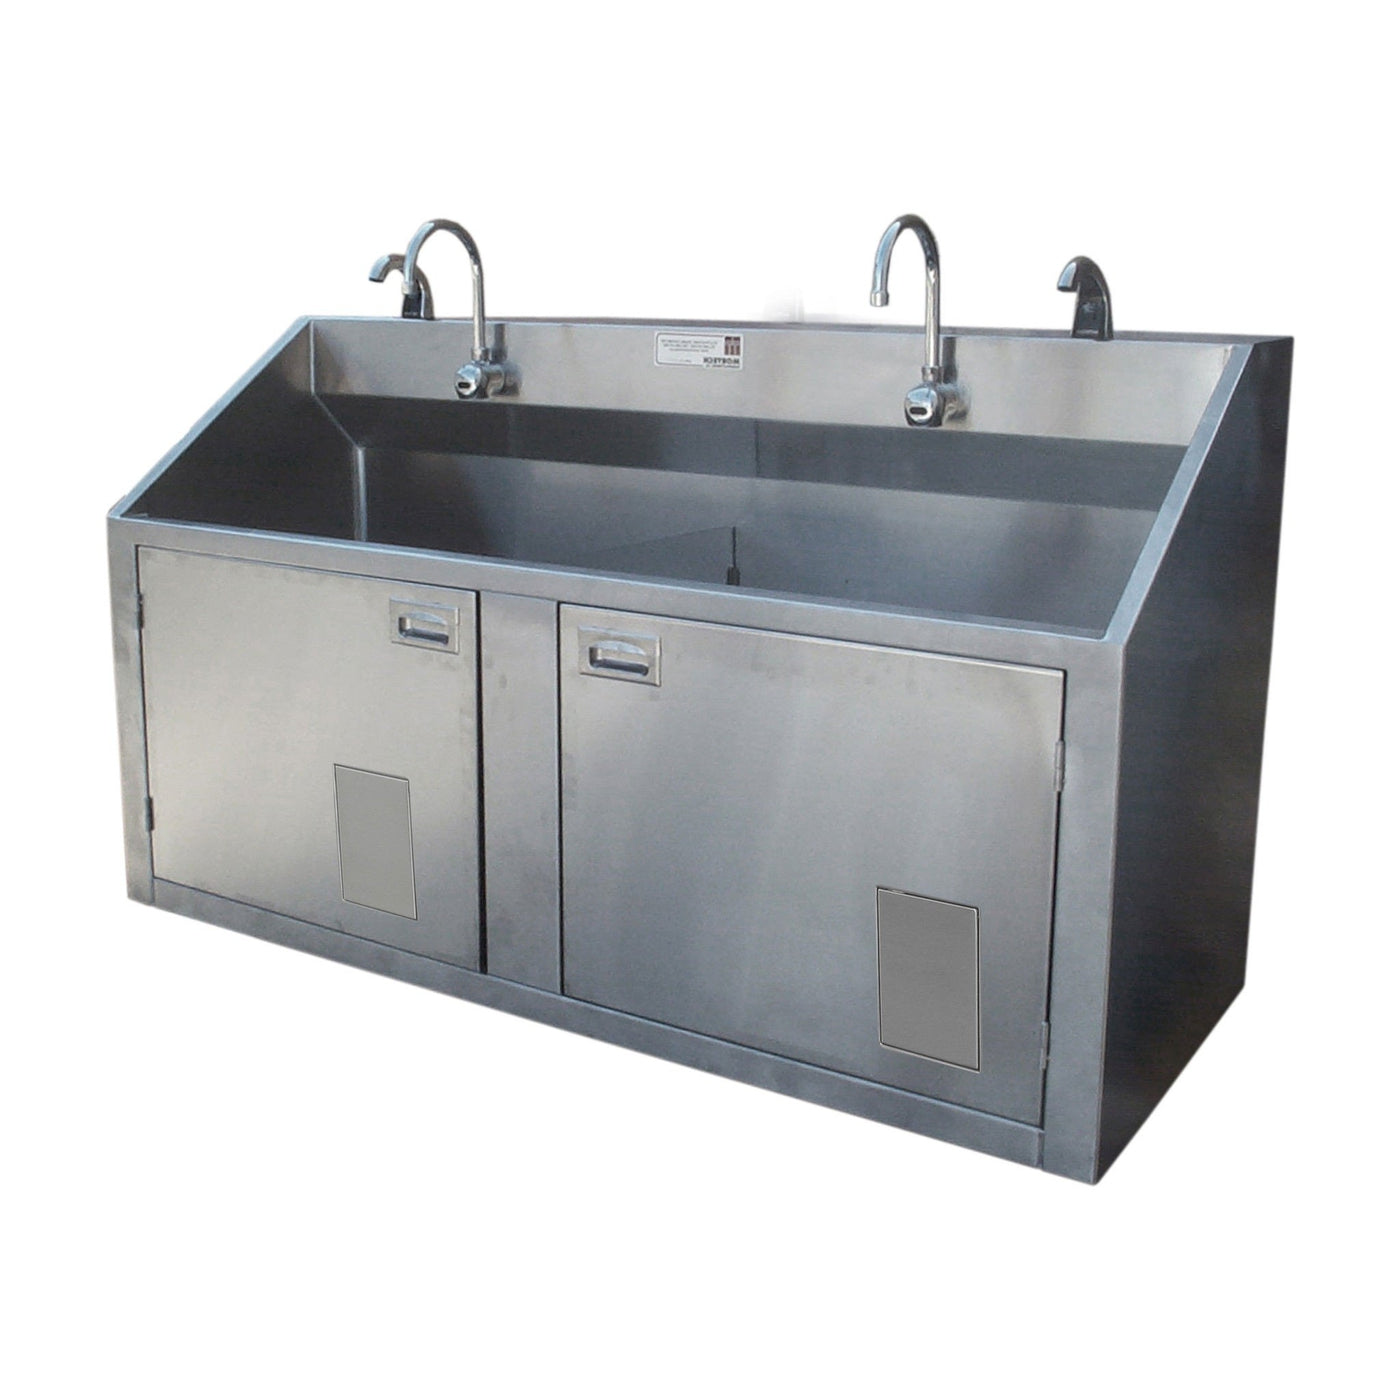 Double Scrub Station-Sink Station-Mortech Manufacturing Company Inc. Quality Stainless Steel Autopsy, Morgue, Funeral Home, Necropsy, Veterinary / Anatomy, Dissection Equipment and Accessories